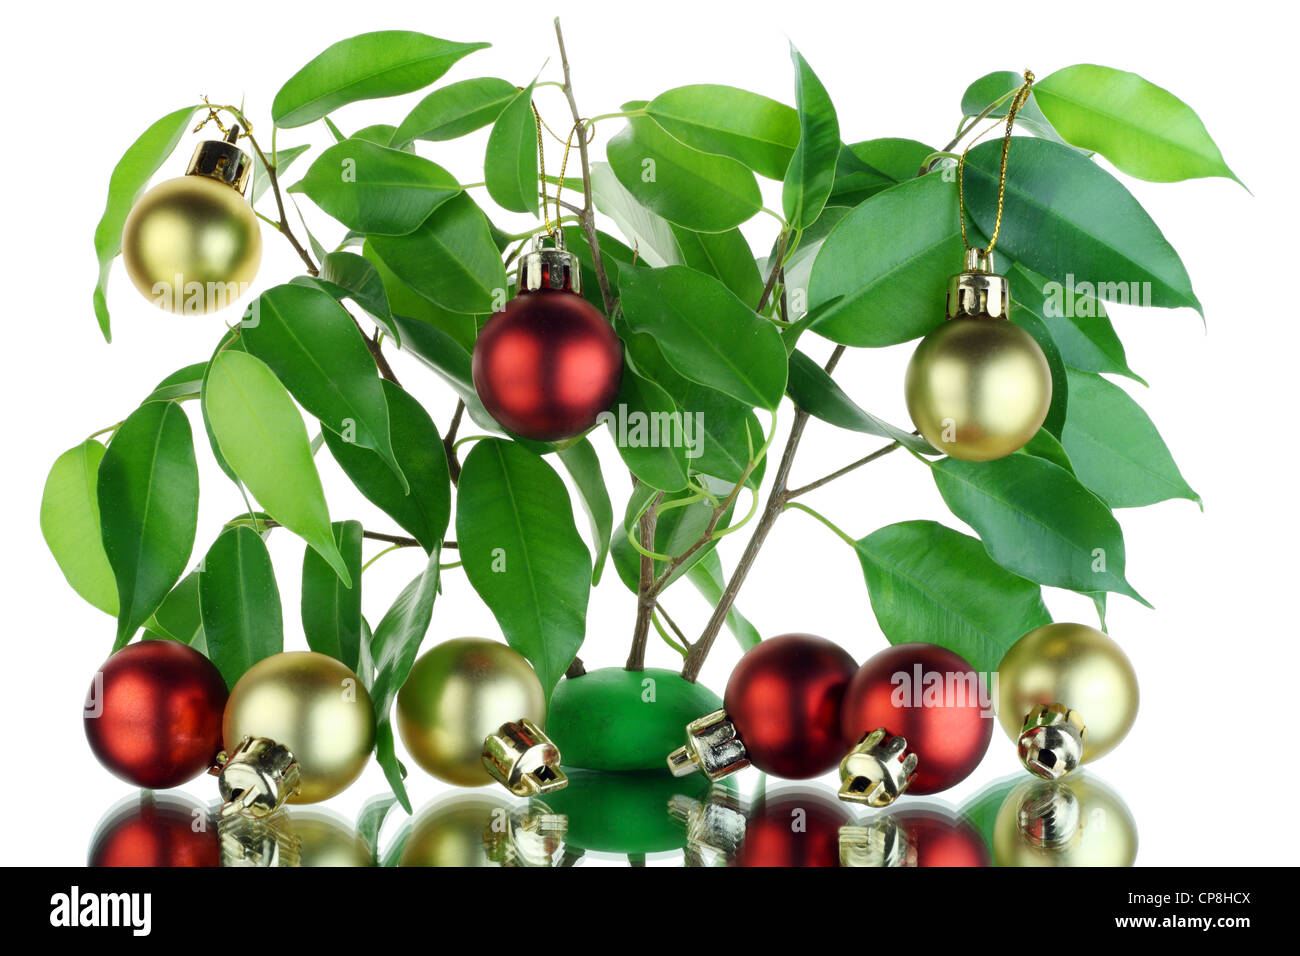 Christmas tree from palm branches with balls and reflection in a mirror. Isolated on white - Stock Image